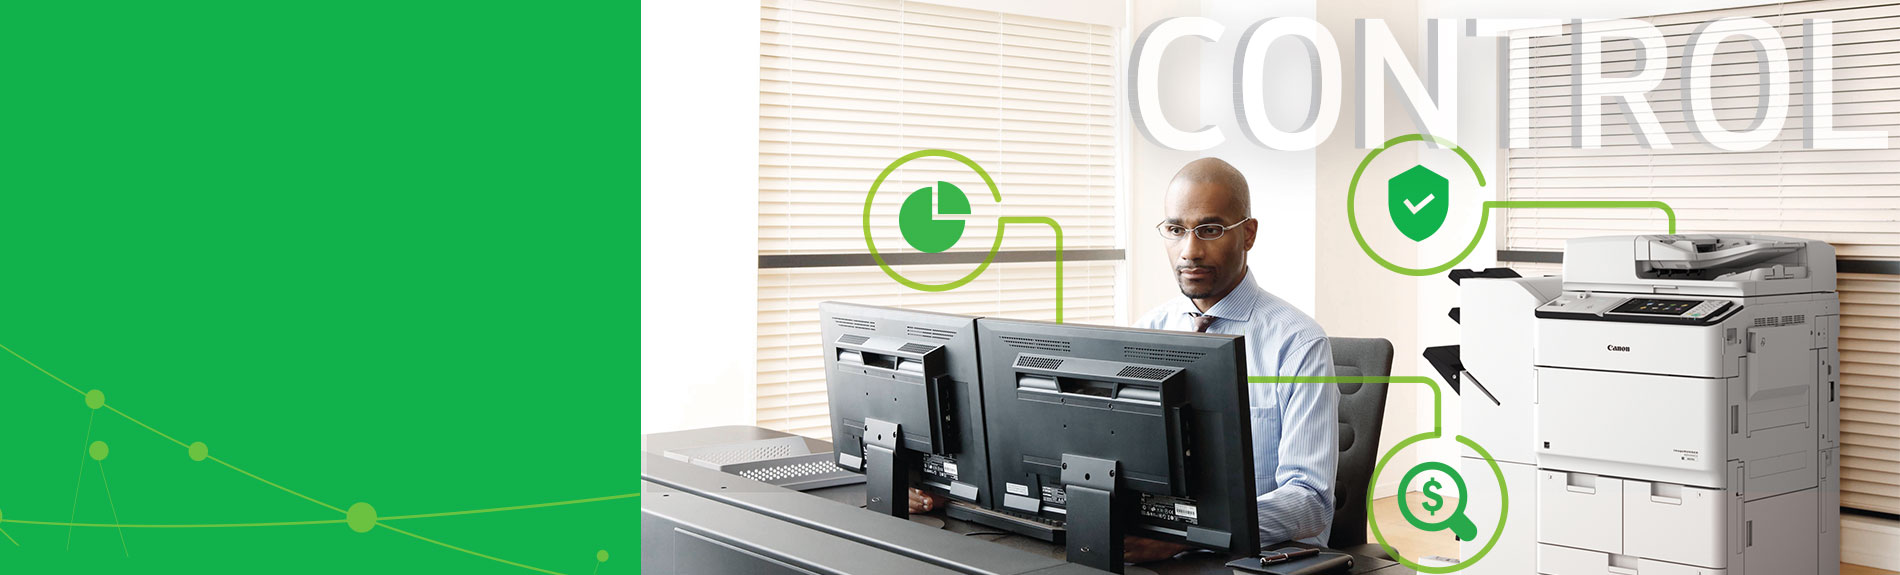 Man at desk with Control text overlay